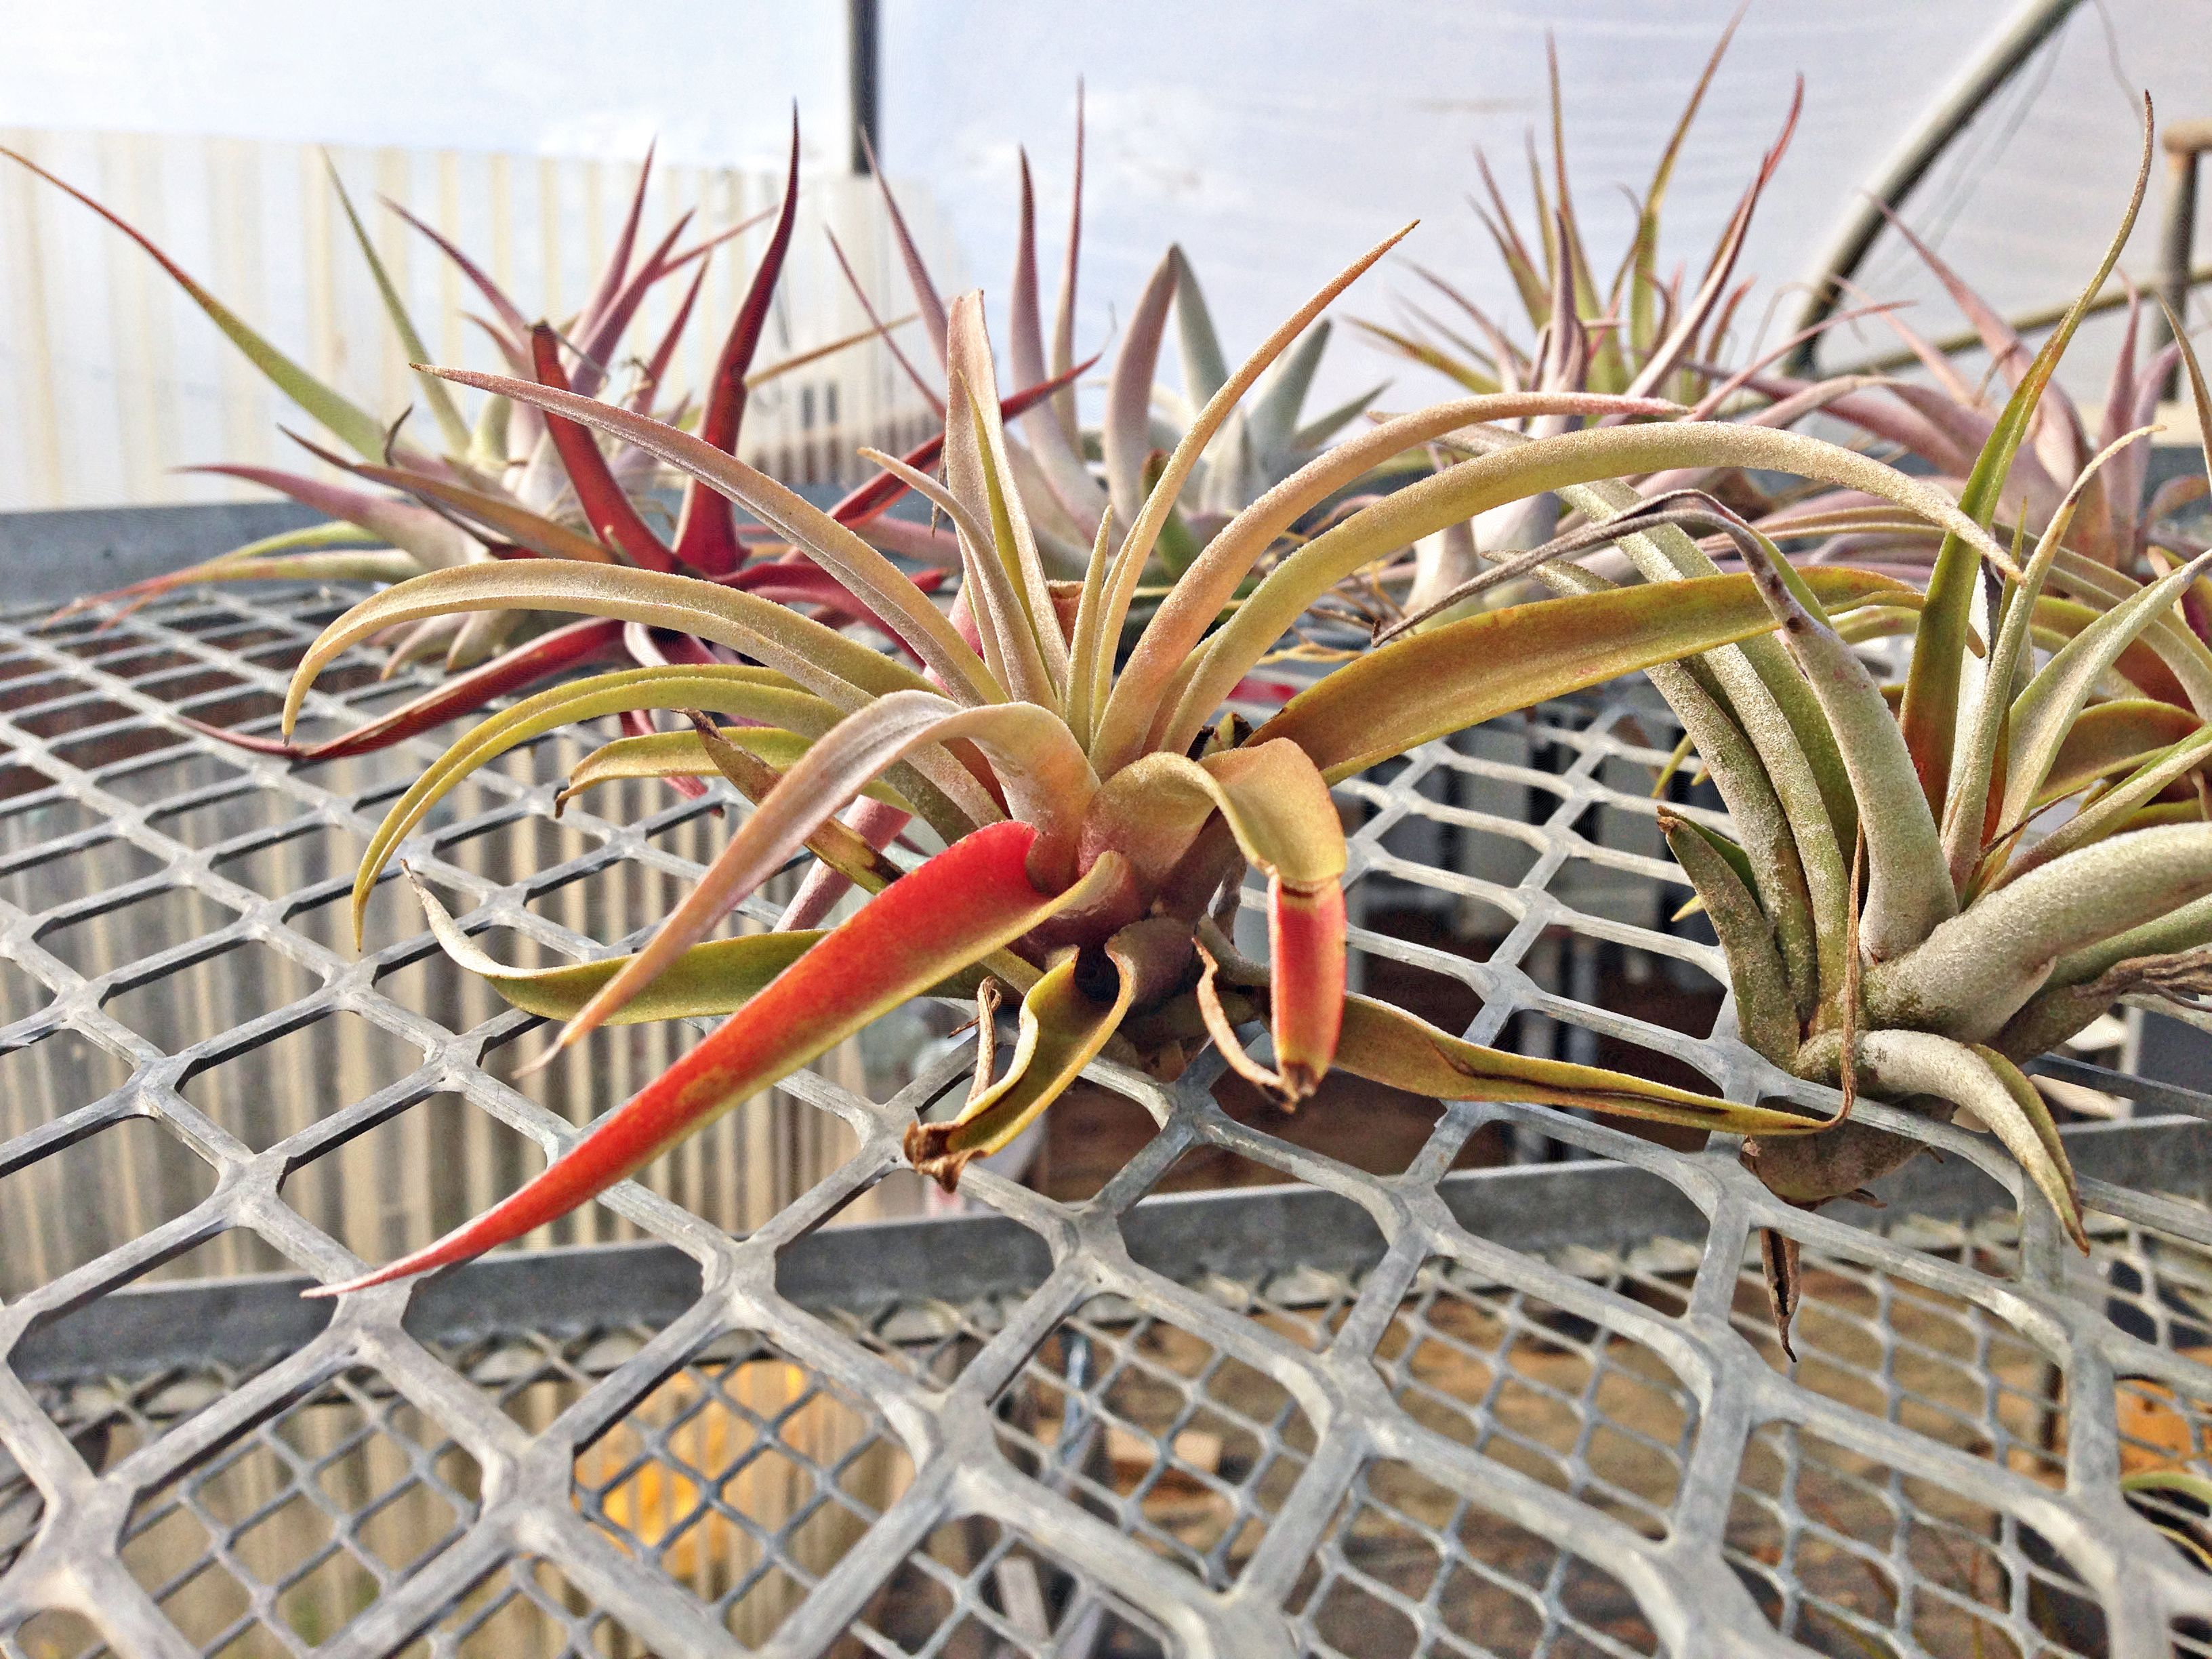 'Peach' air plant with green, yellow, and orange tones